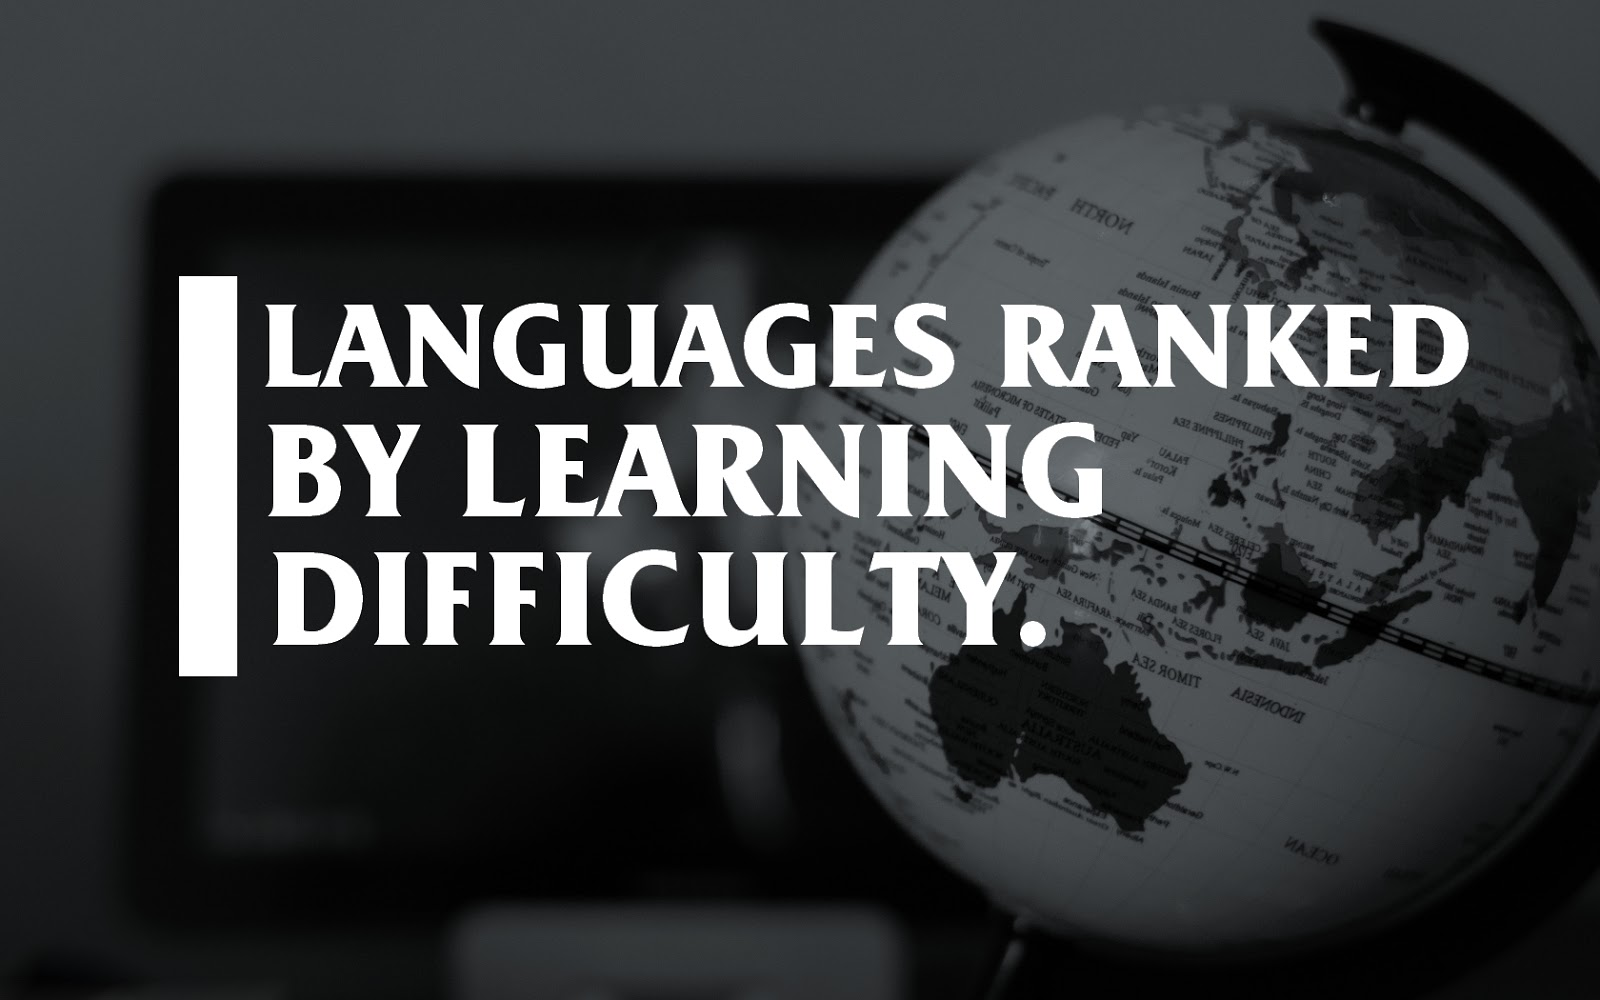 What are the hardest and easiest languages to learn?